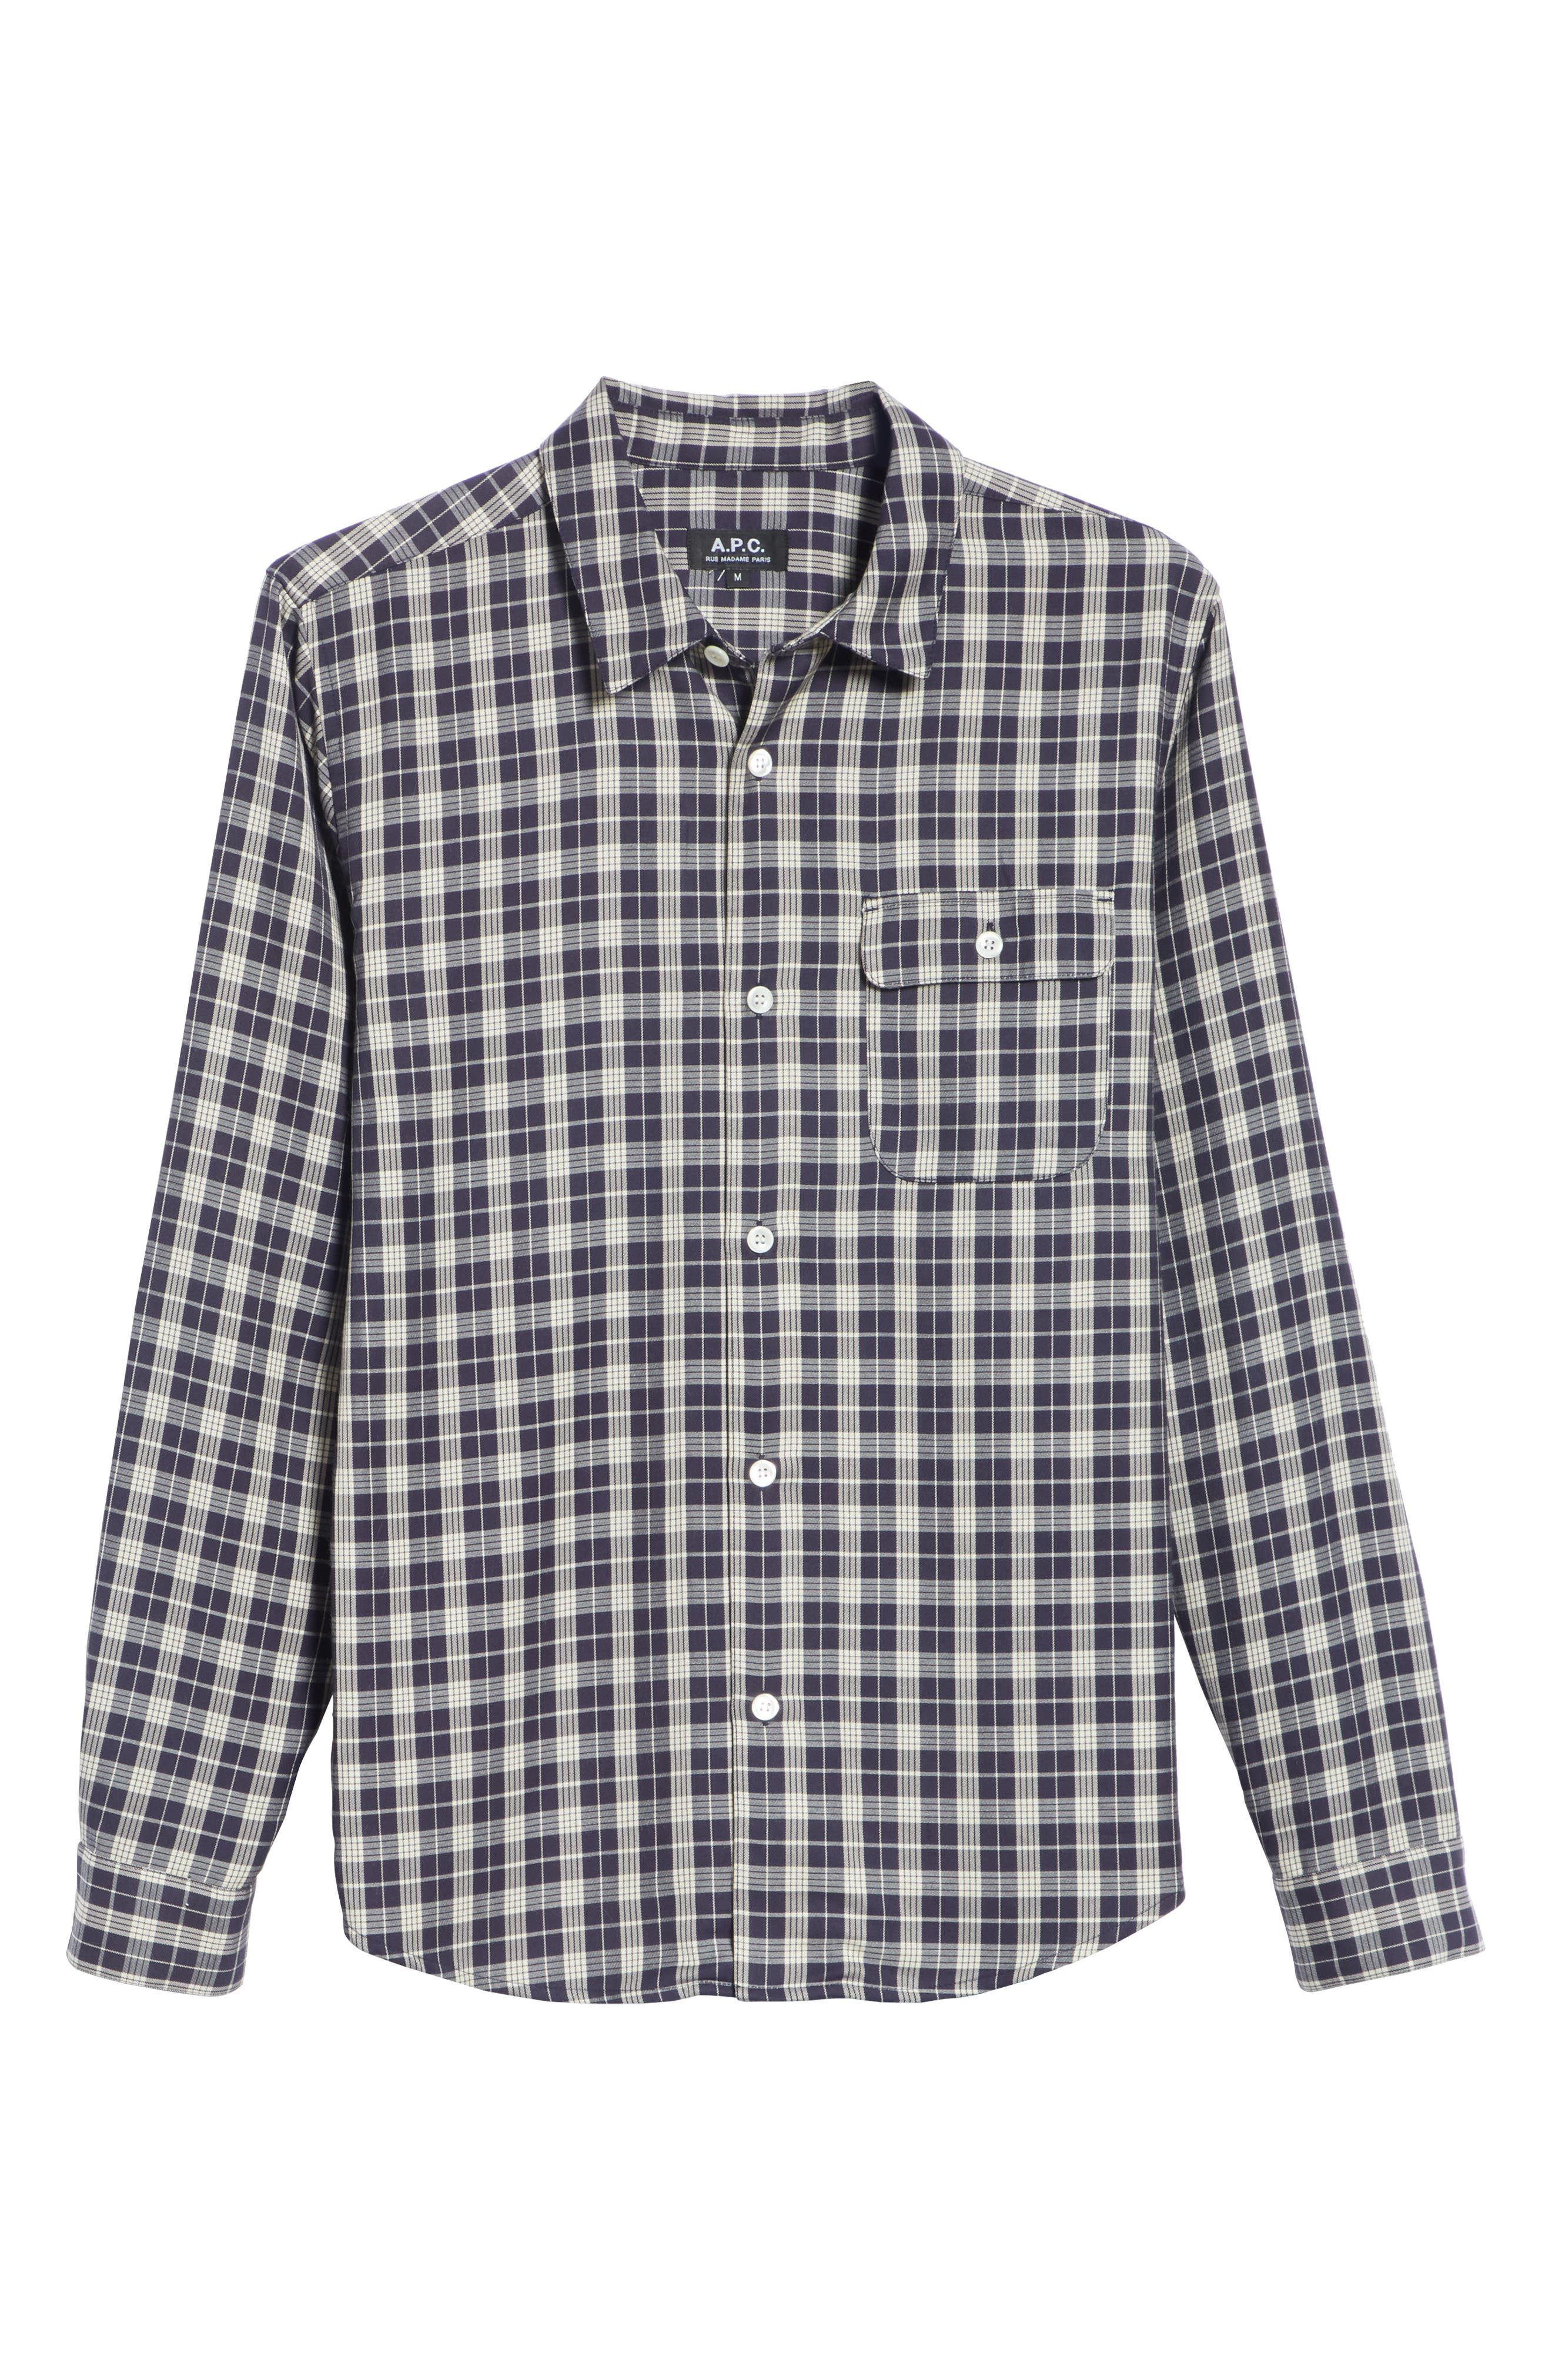 Check Woven Shirt,                             Alternate thumbnail 6, color,                             IAK NAVY